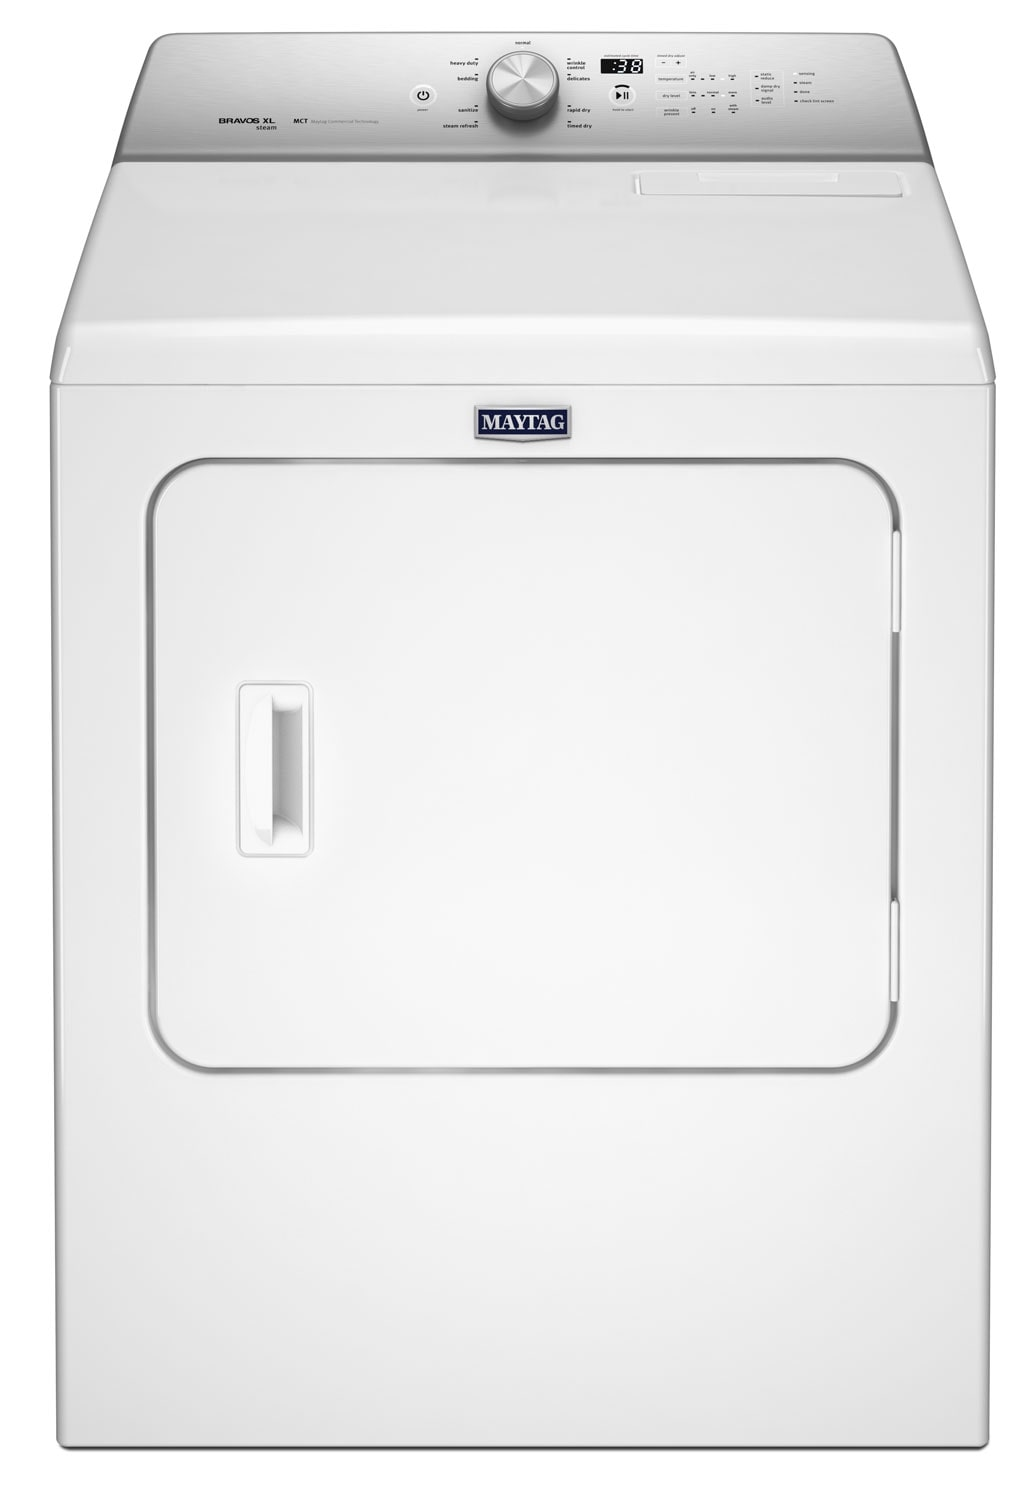 Maytag® 7.0 Cu. Ft. Steam Electric Dryer - White